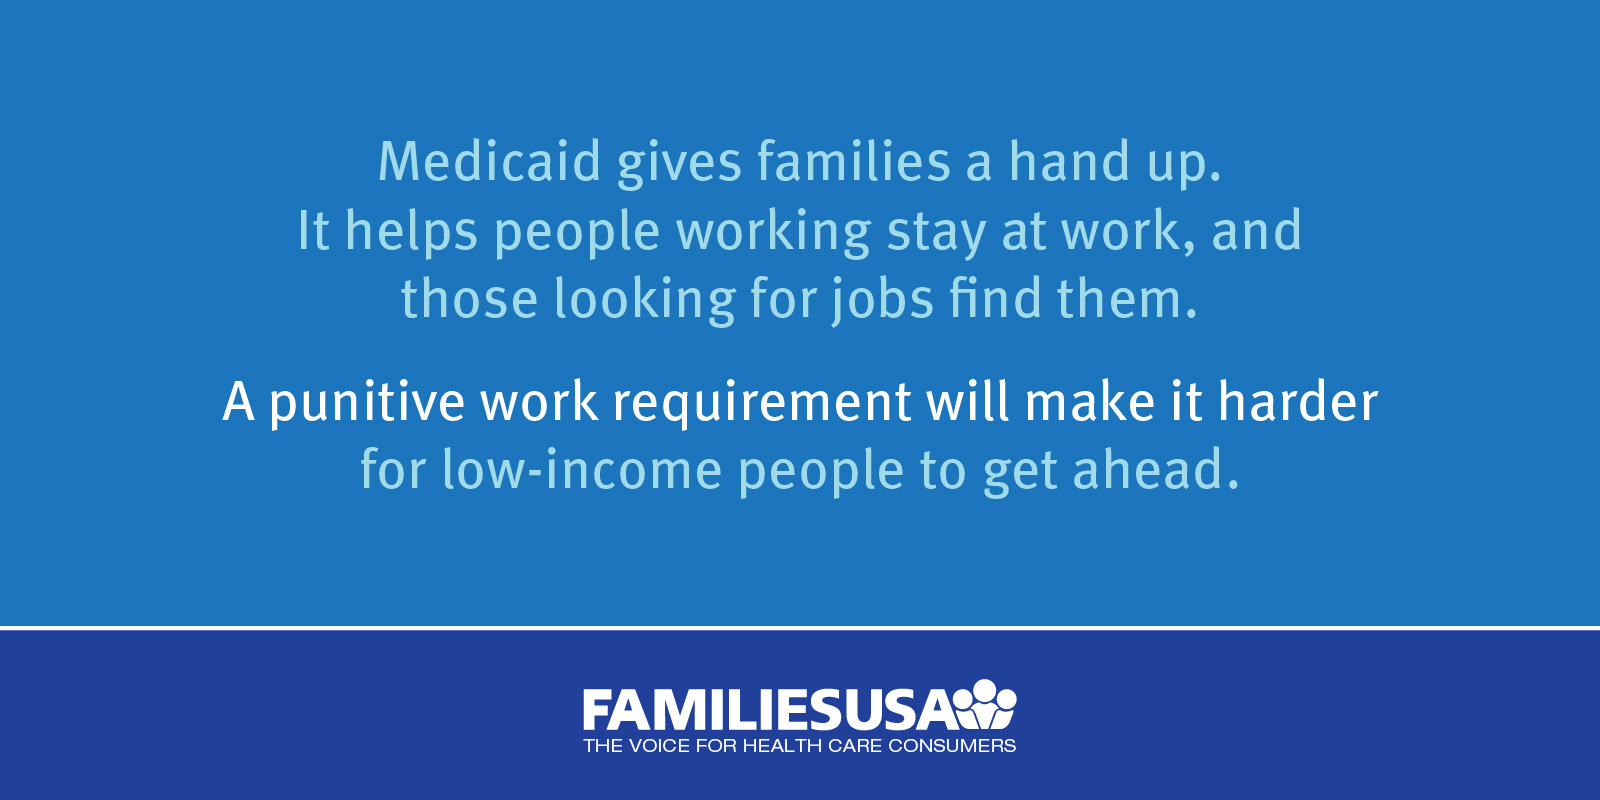 https://familiesusa.org/wp-content/uploads/2018/02/Medicaid_WorkRequirement.jpg